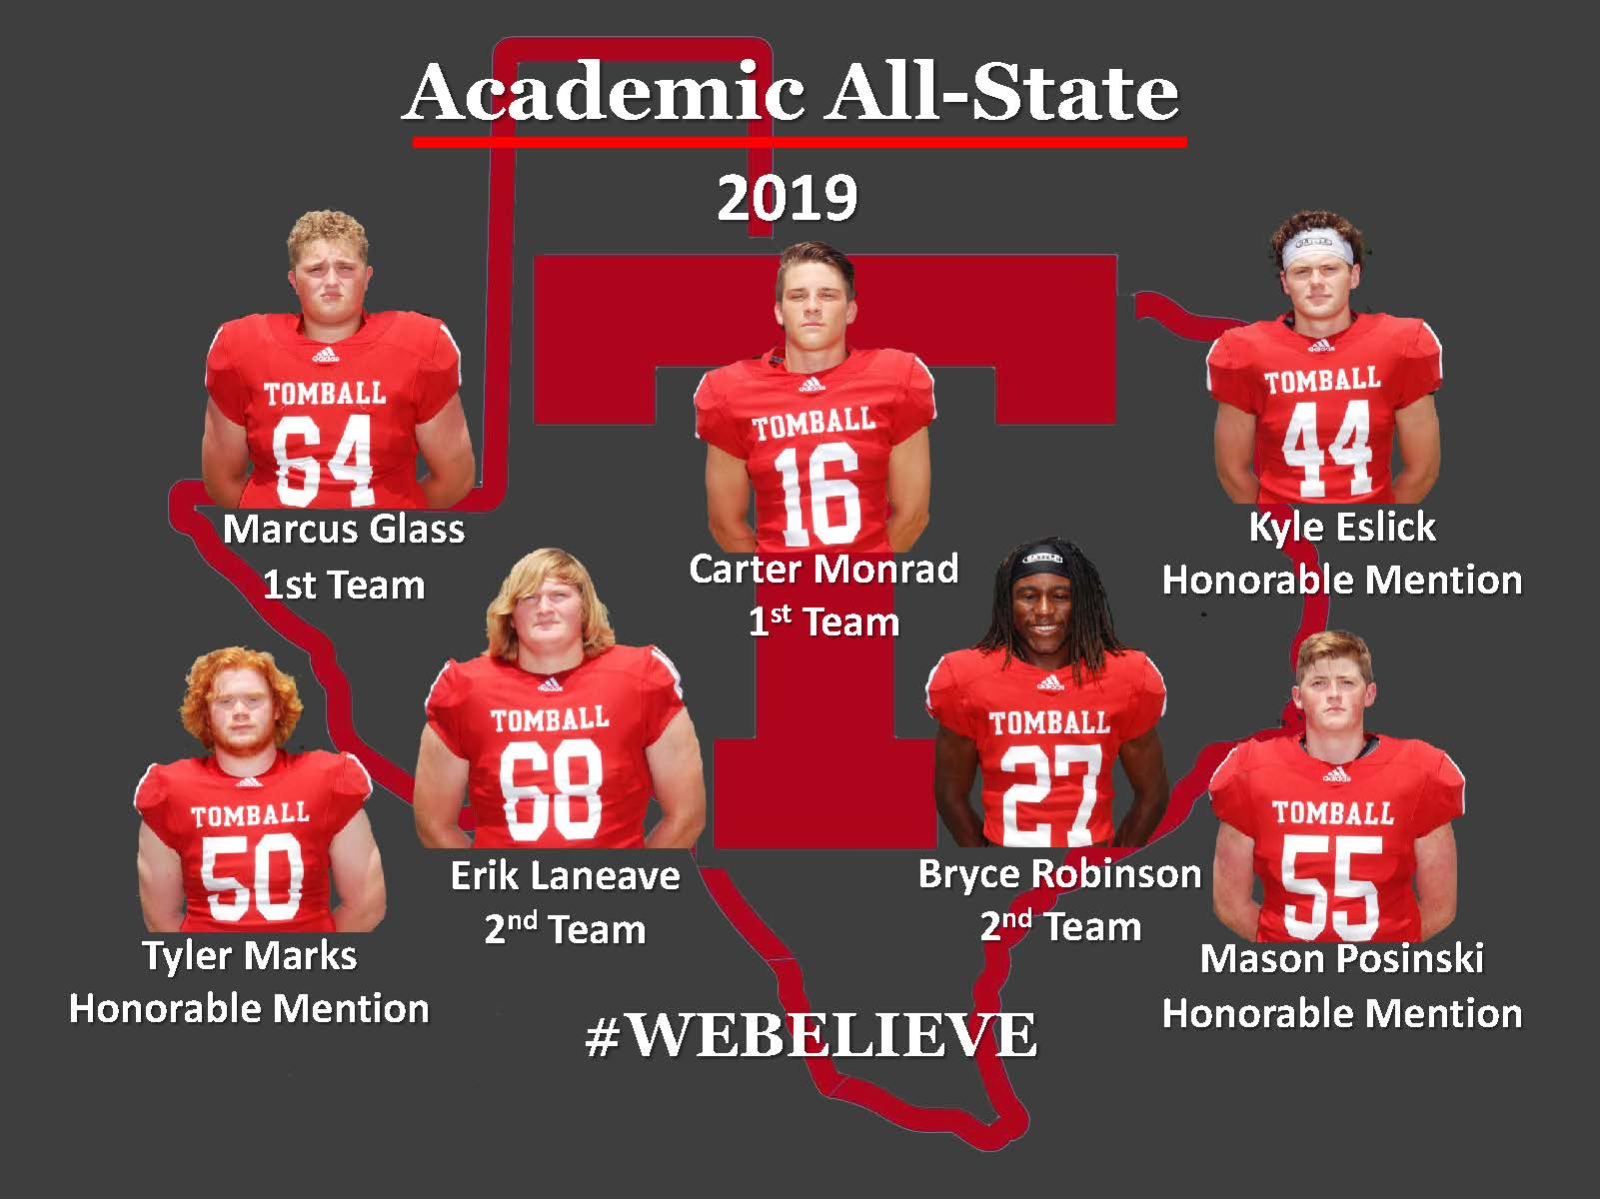 2019 FOOTBALL ACADEMIC ALL STATE